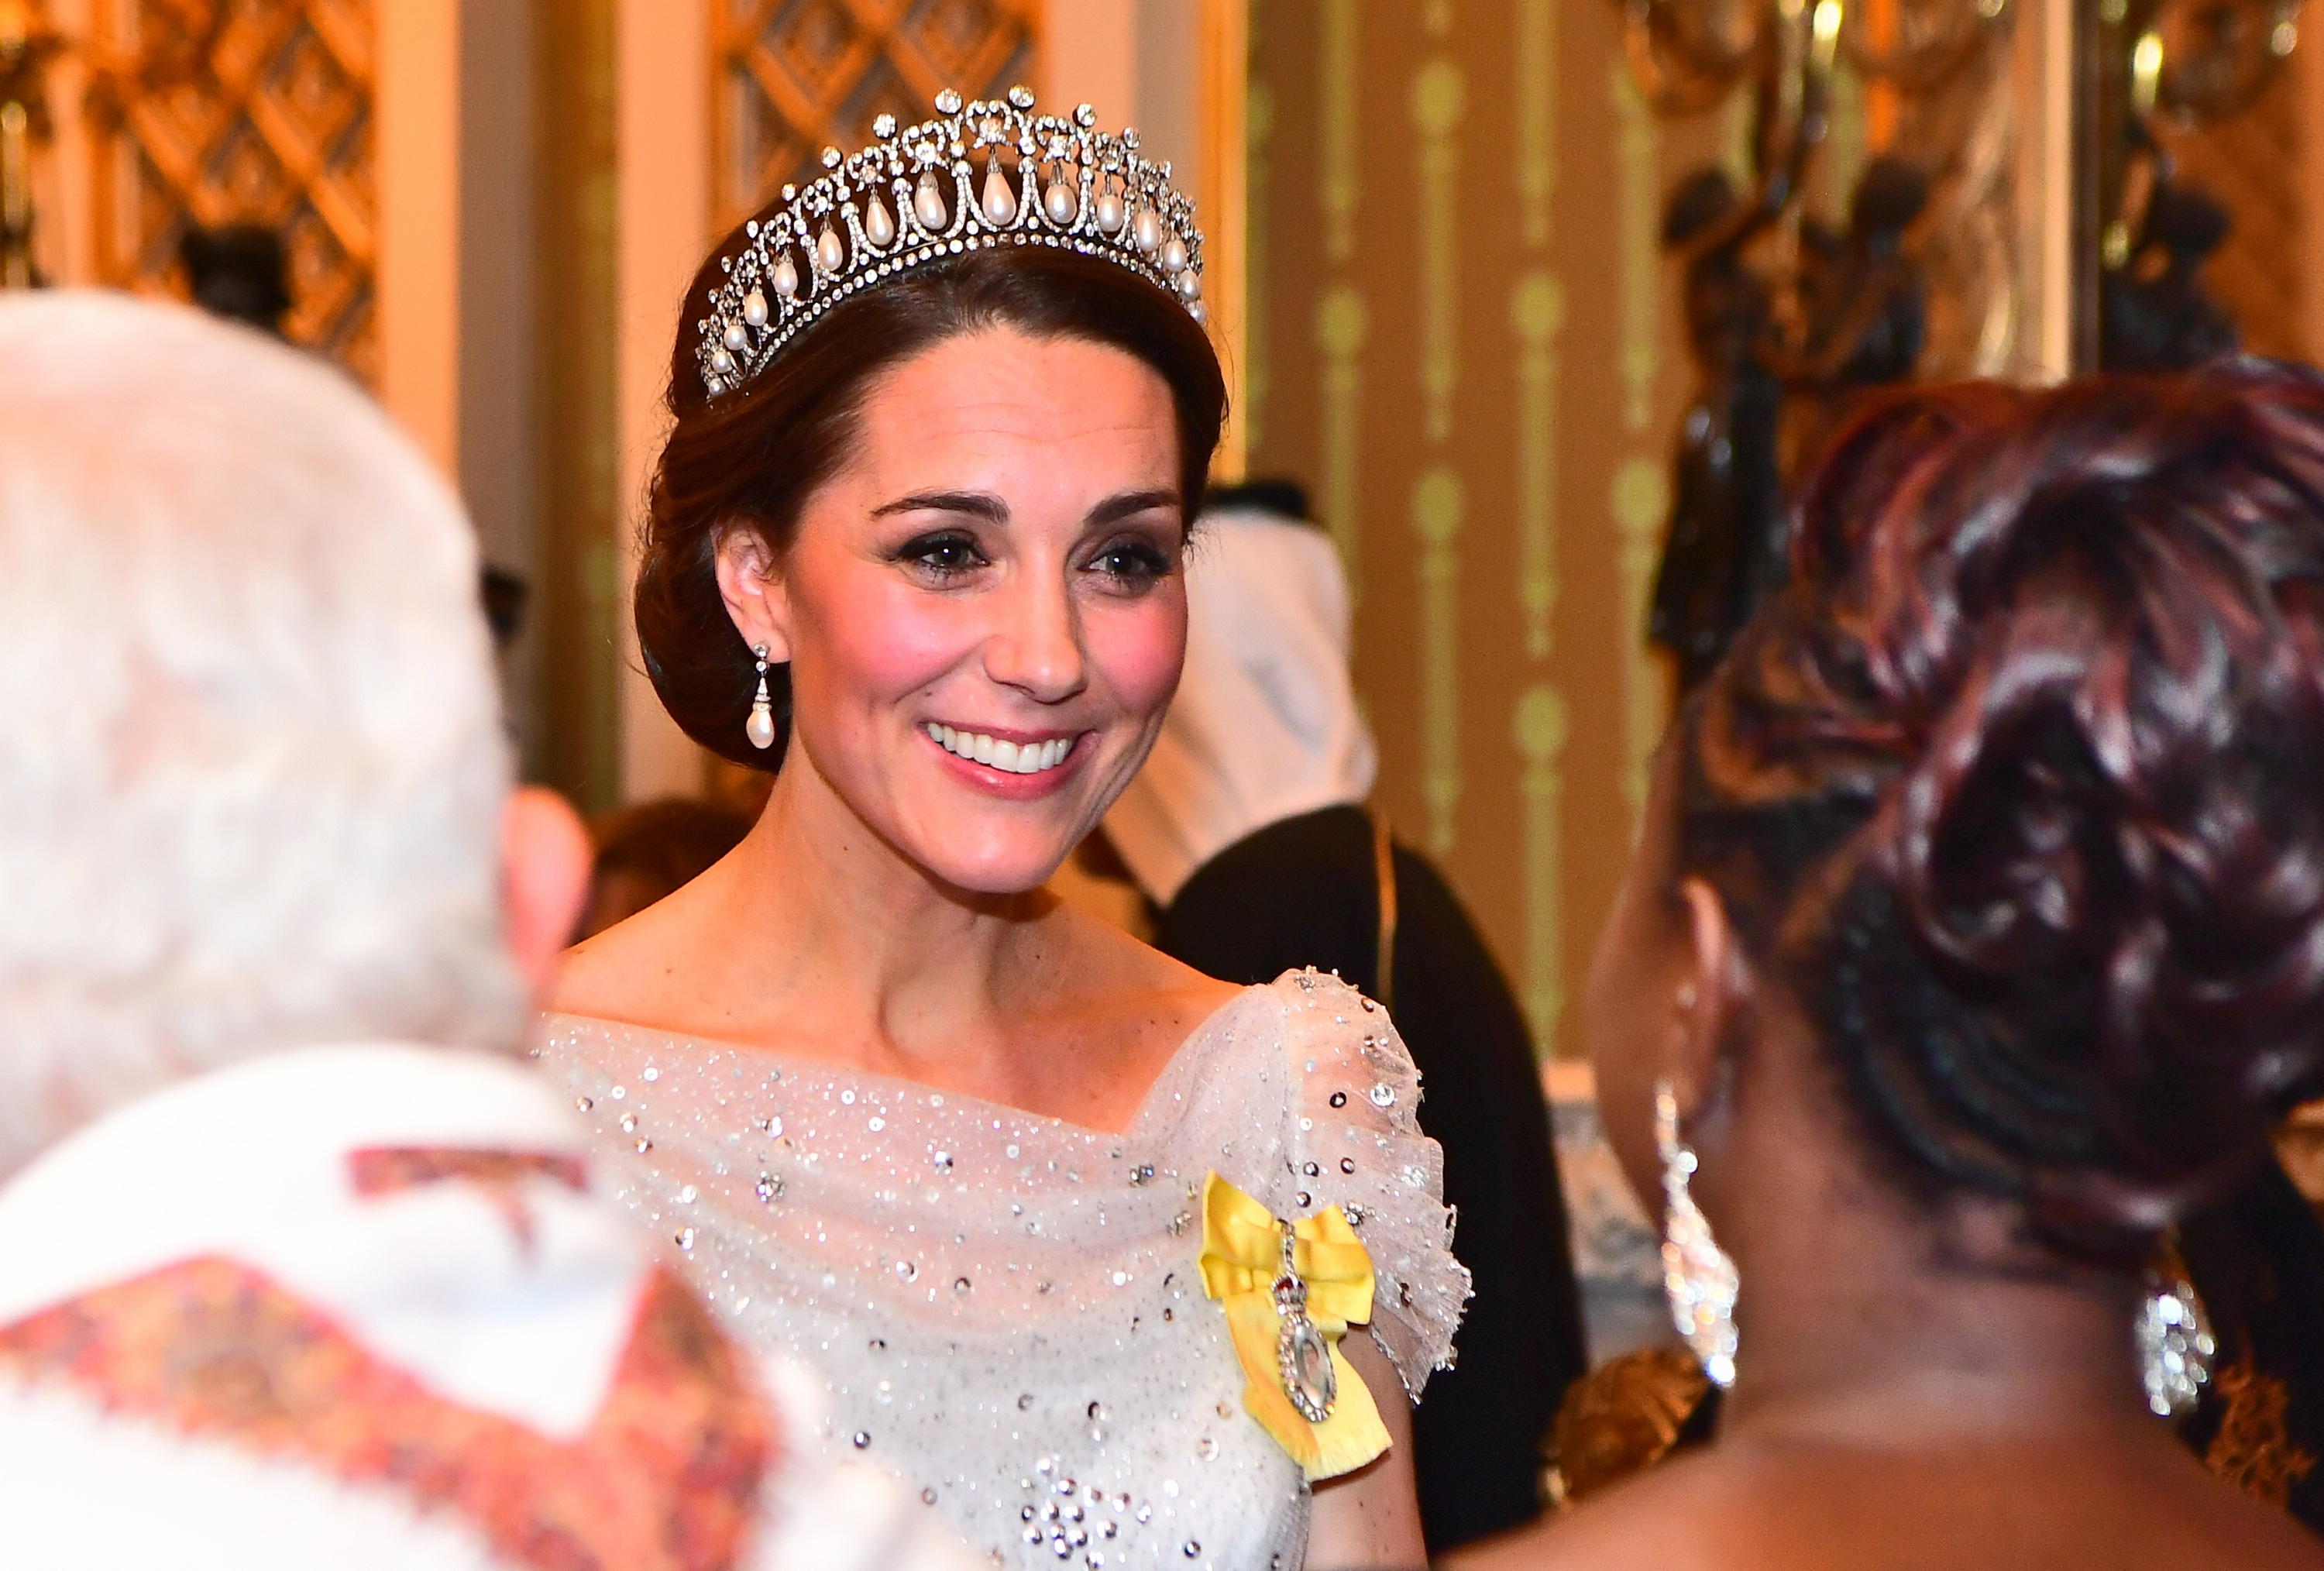 the-duke-duchess-of-cambridge-attend-evening-reception-for-members-of-the-diplomatic-corps